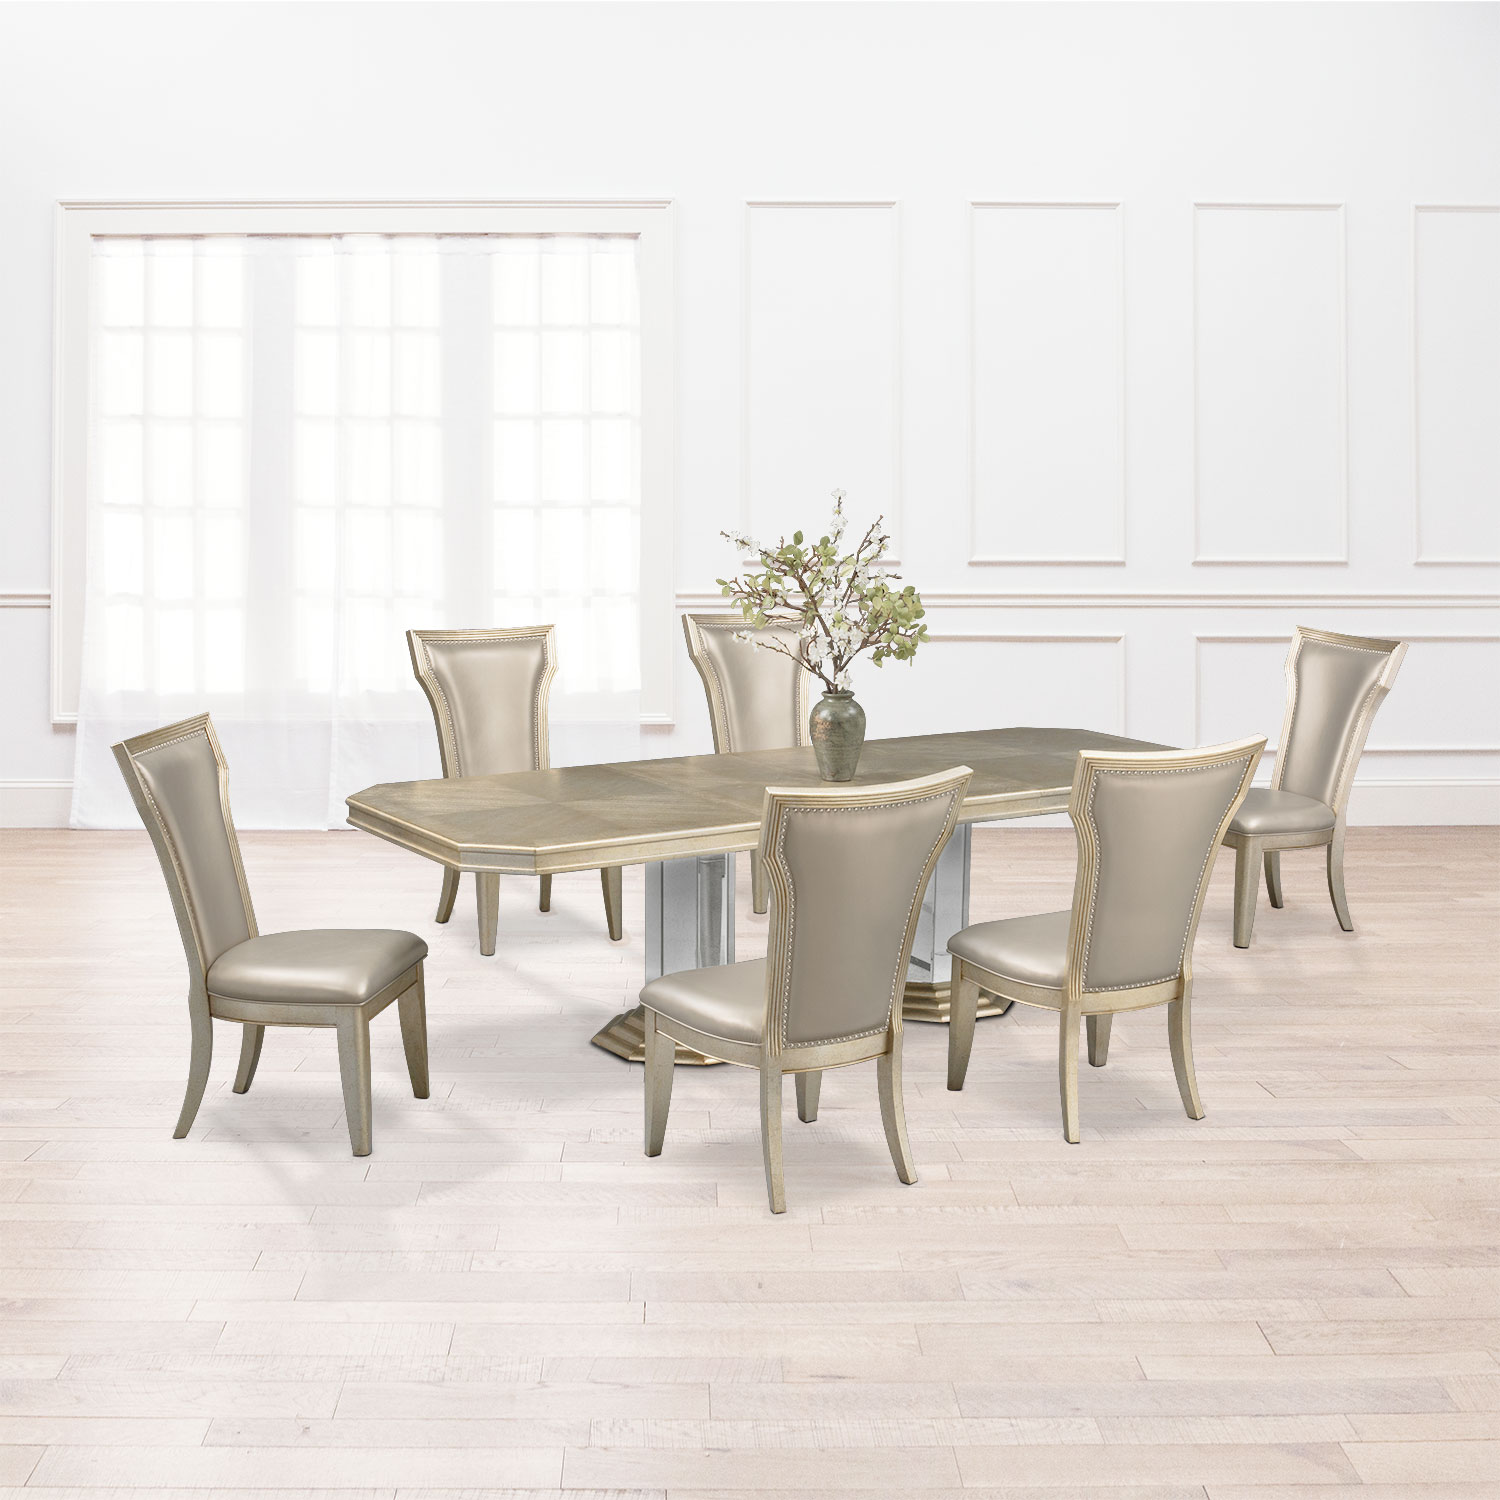 Dining Room Furniture - Angelina Double-Pedestal Table and 6 Side Chairs - Metallic  sc 1 st  American Signature Furniture & Angelina Double-Pedestal Table and 6 Side Chairs - Metallic ...